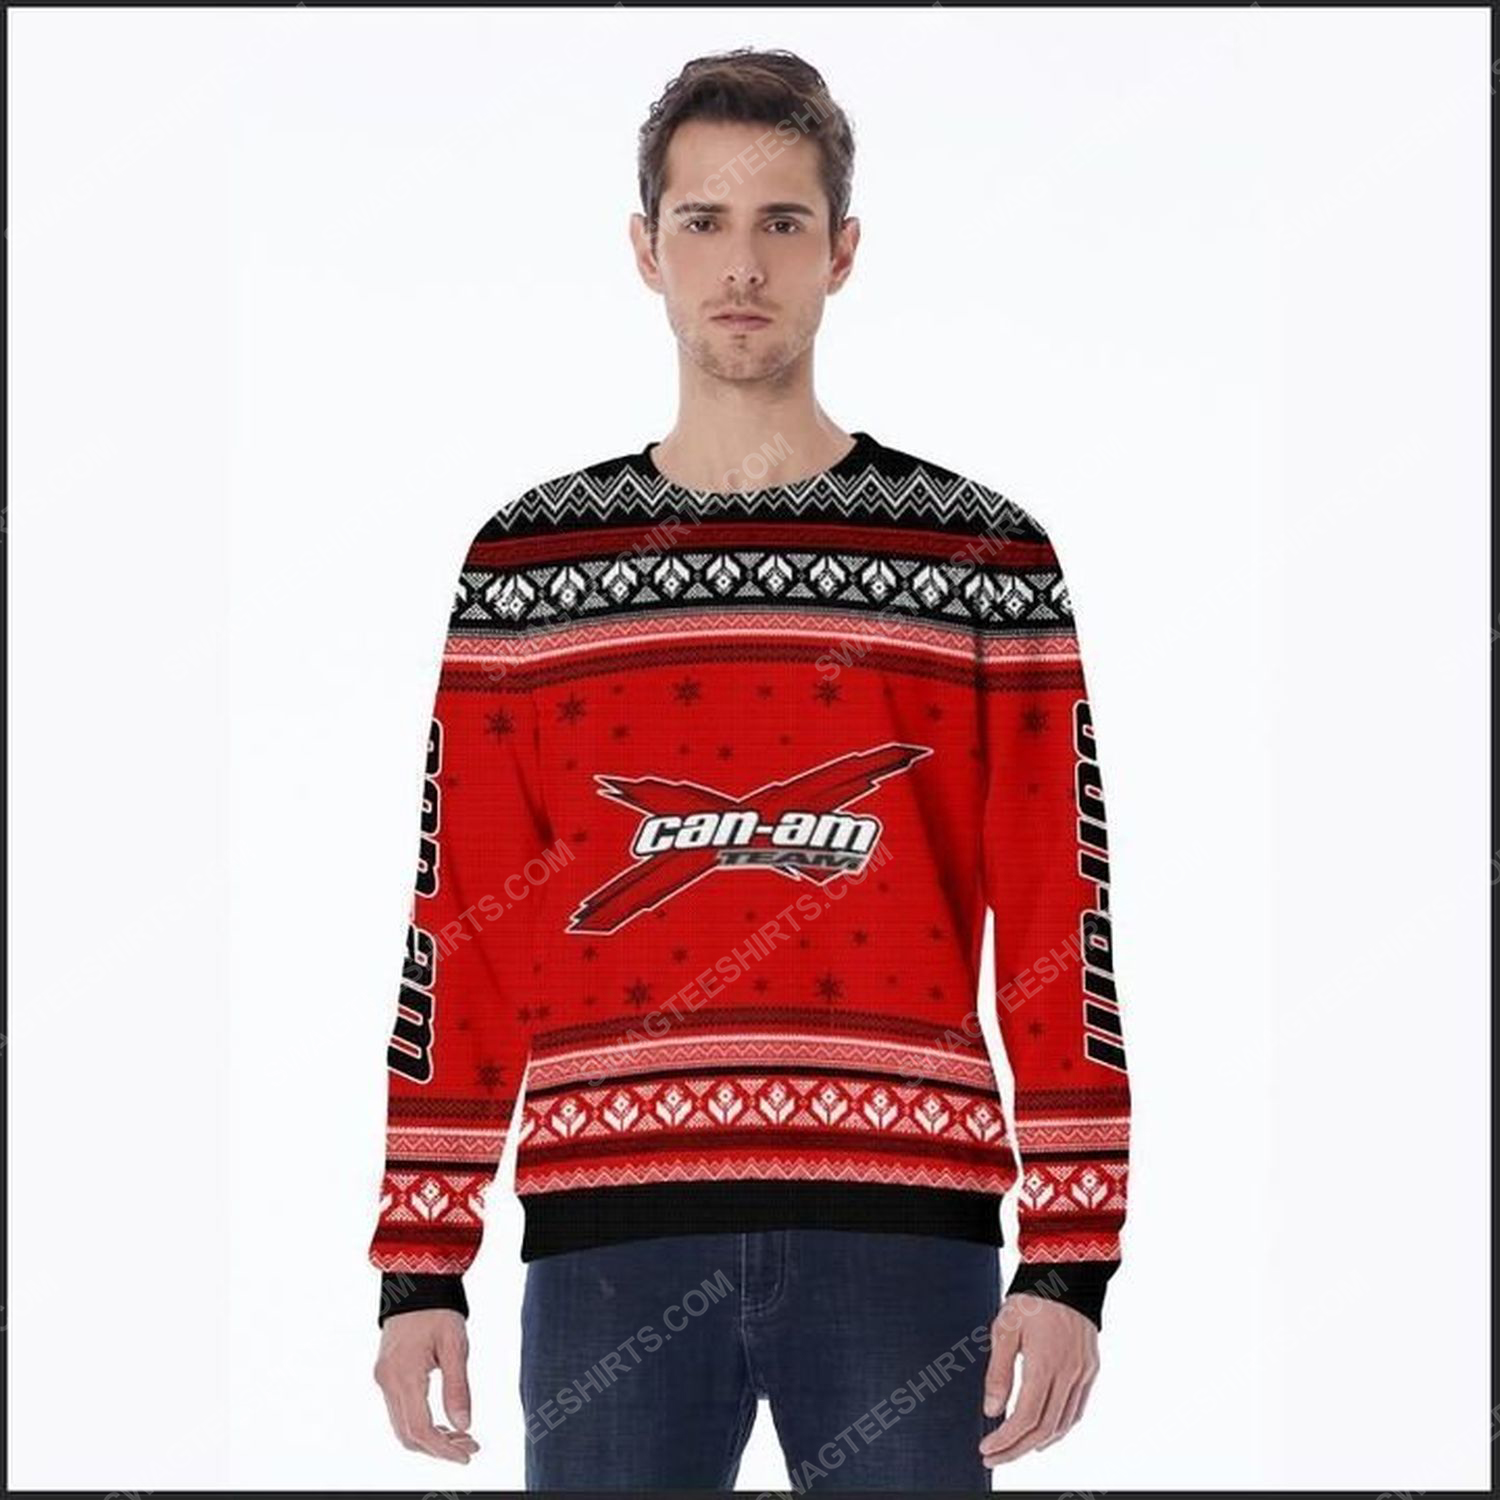 Can-am racing team ugly christmas sweater